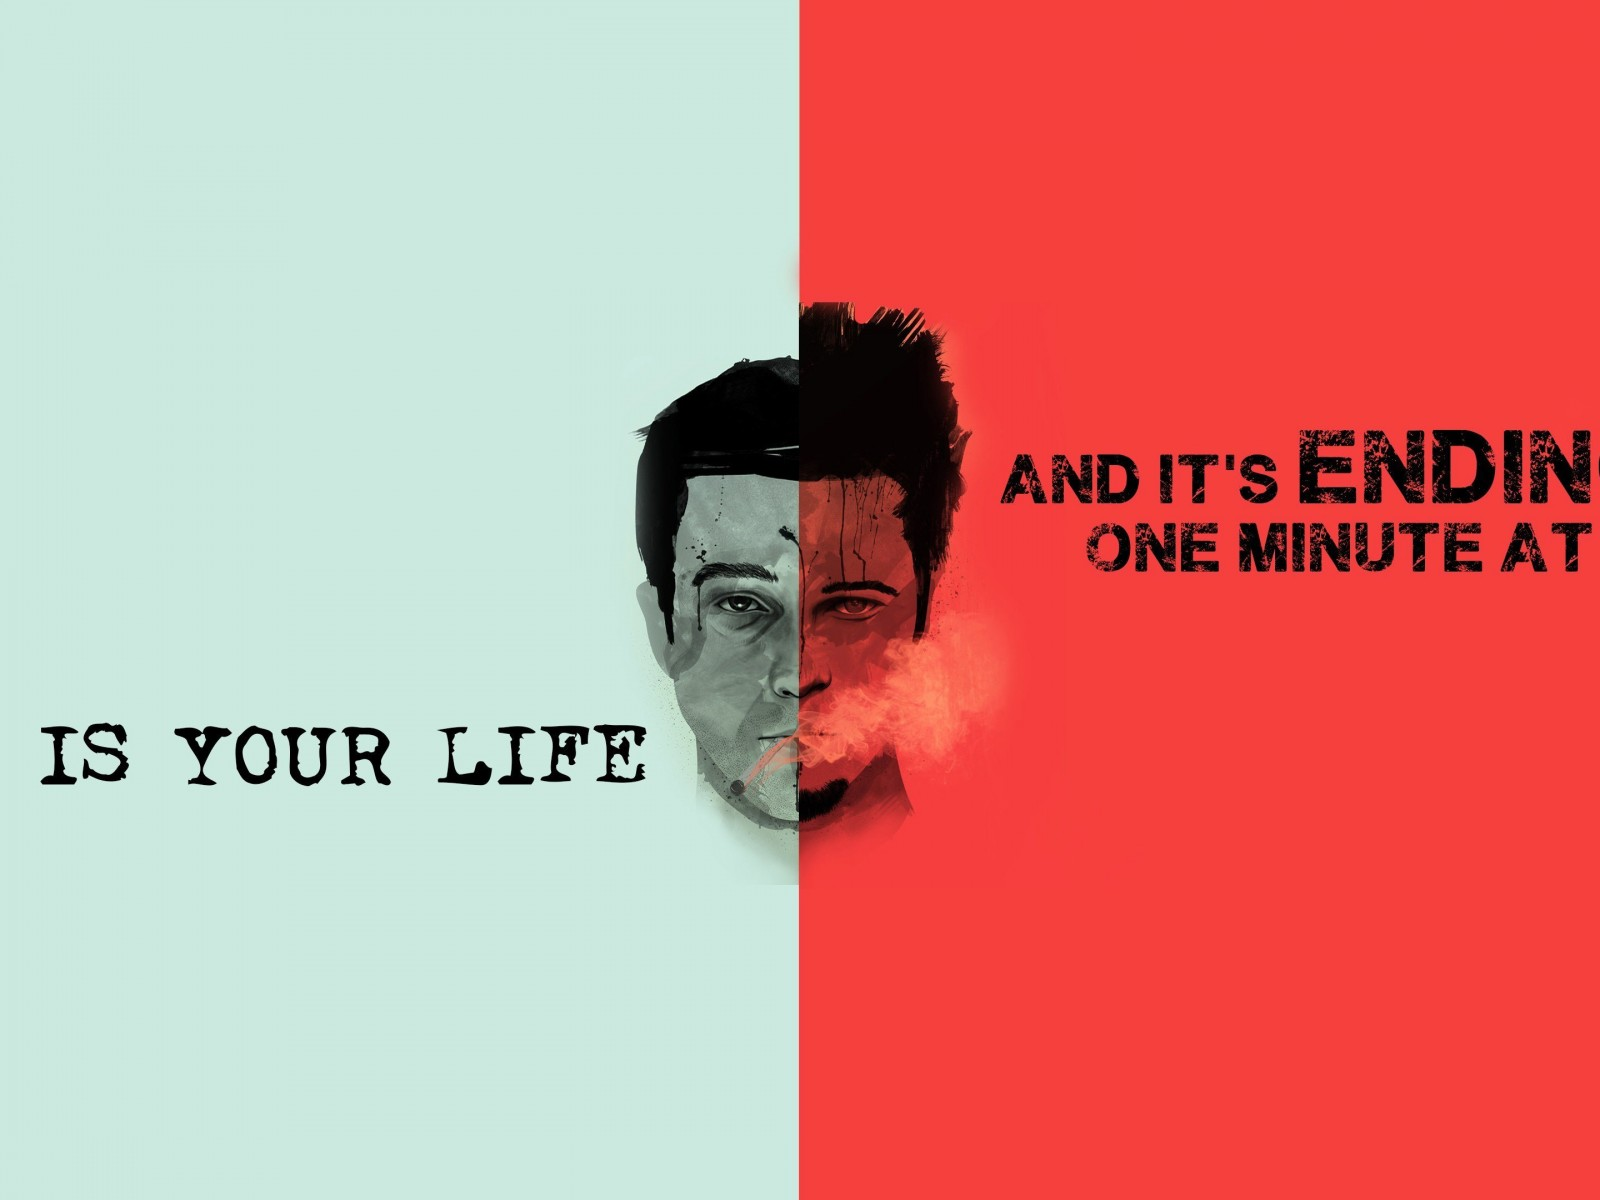 Fight Club Quote Wallpaper for Desktop 1600x1200